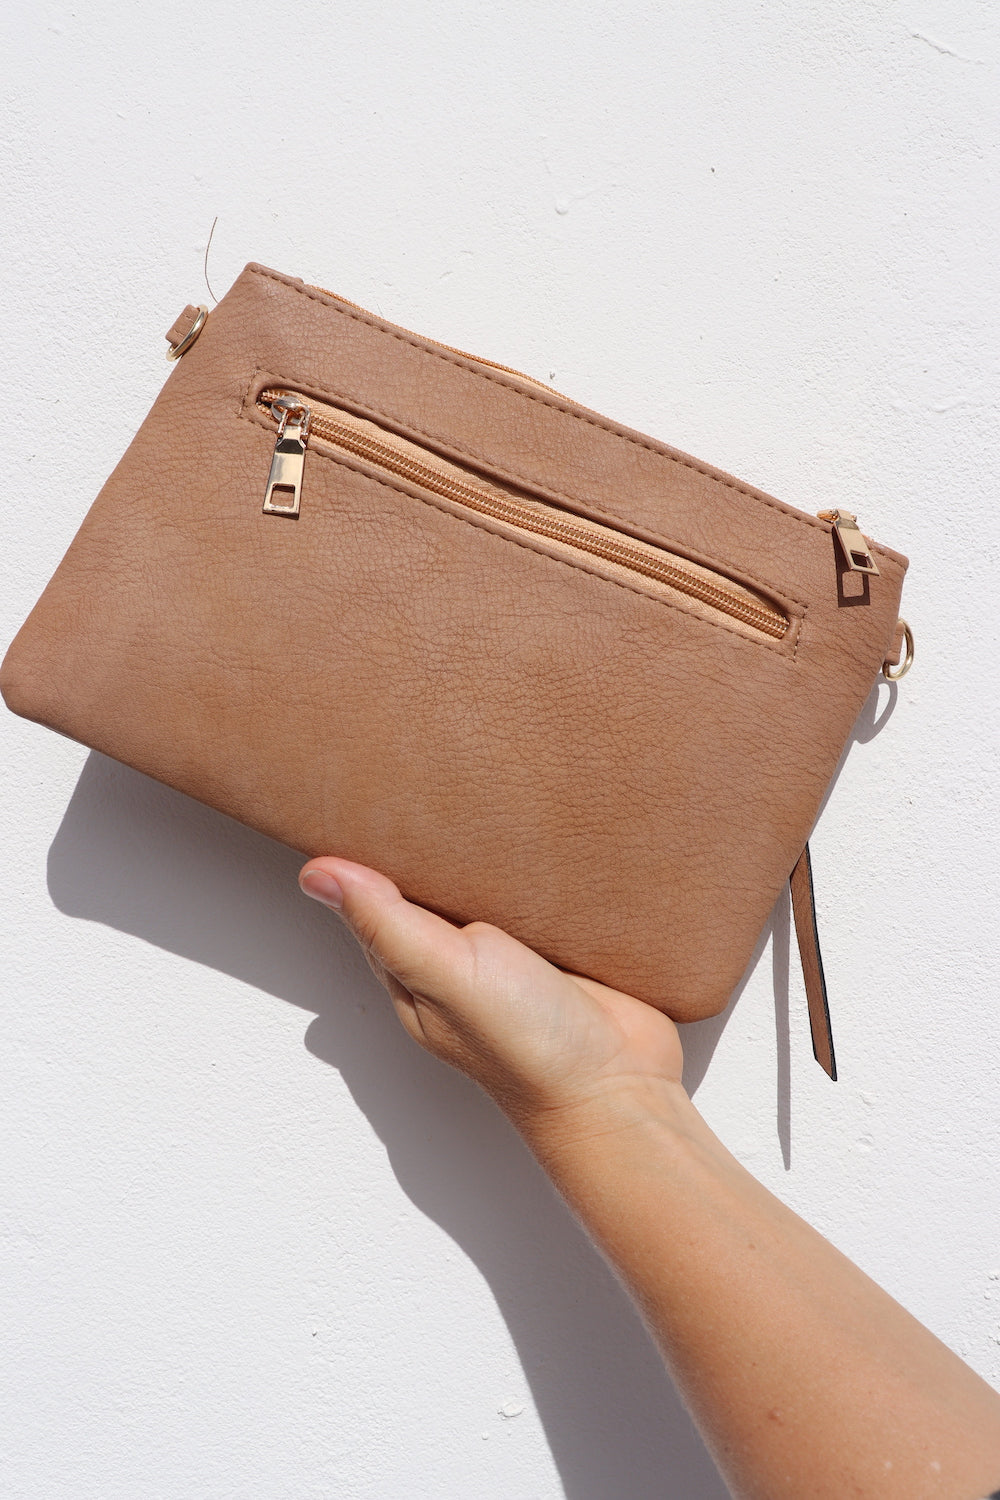 Malta Handbag In Tan